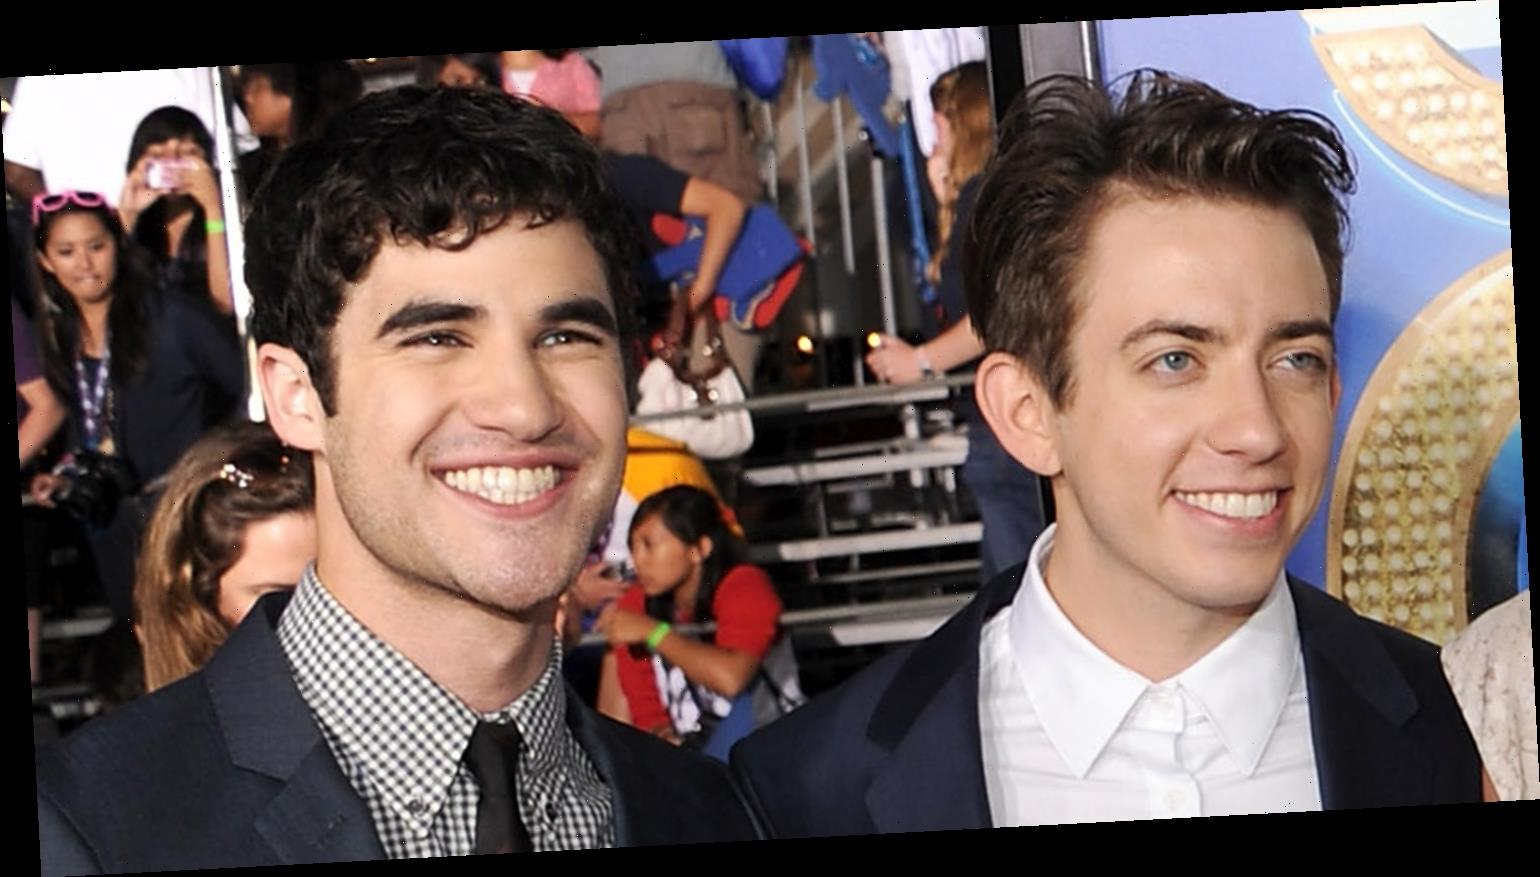 Darren Criss Responds To 'Glee' Co-Star Kevin McHale's Viral Tweet About Him